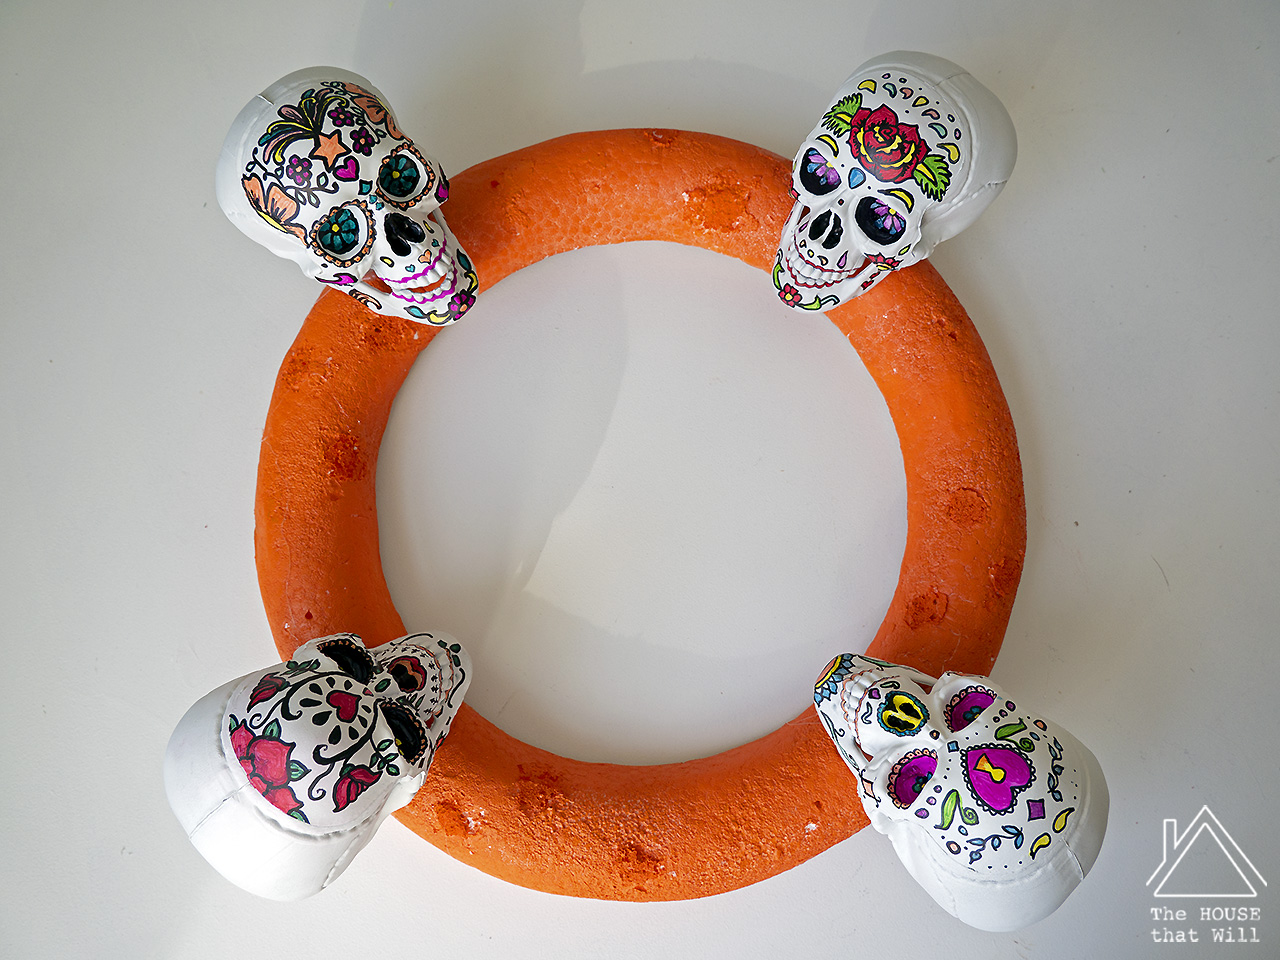 The House that Will | DIY Day of the Dead Dia de los Muertos sugar skull wreath Halloween decor